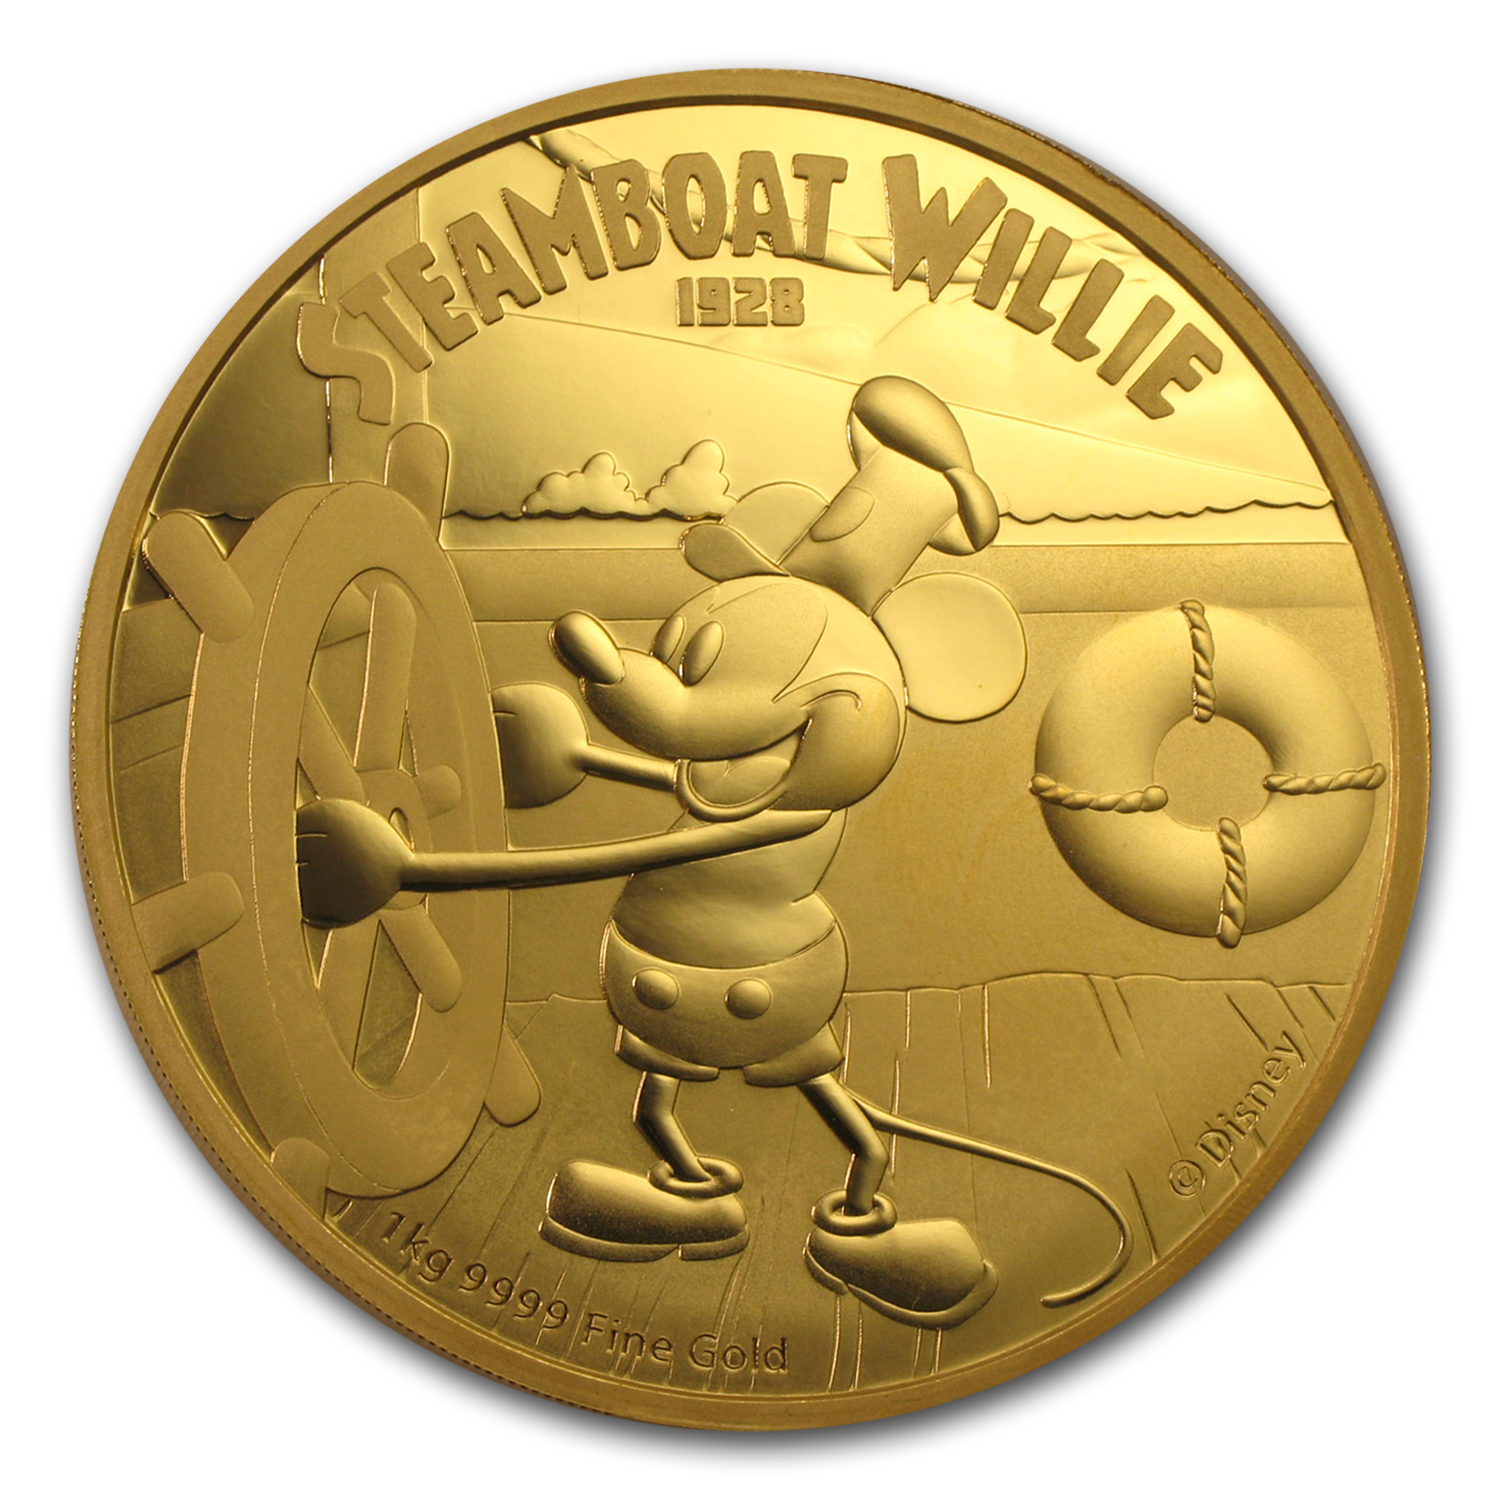 2015 Niue 1 Kilo Gold $5000 Steamboat Willie